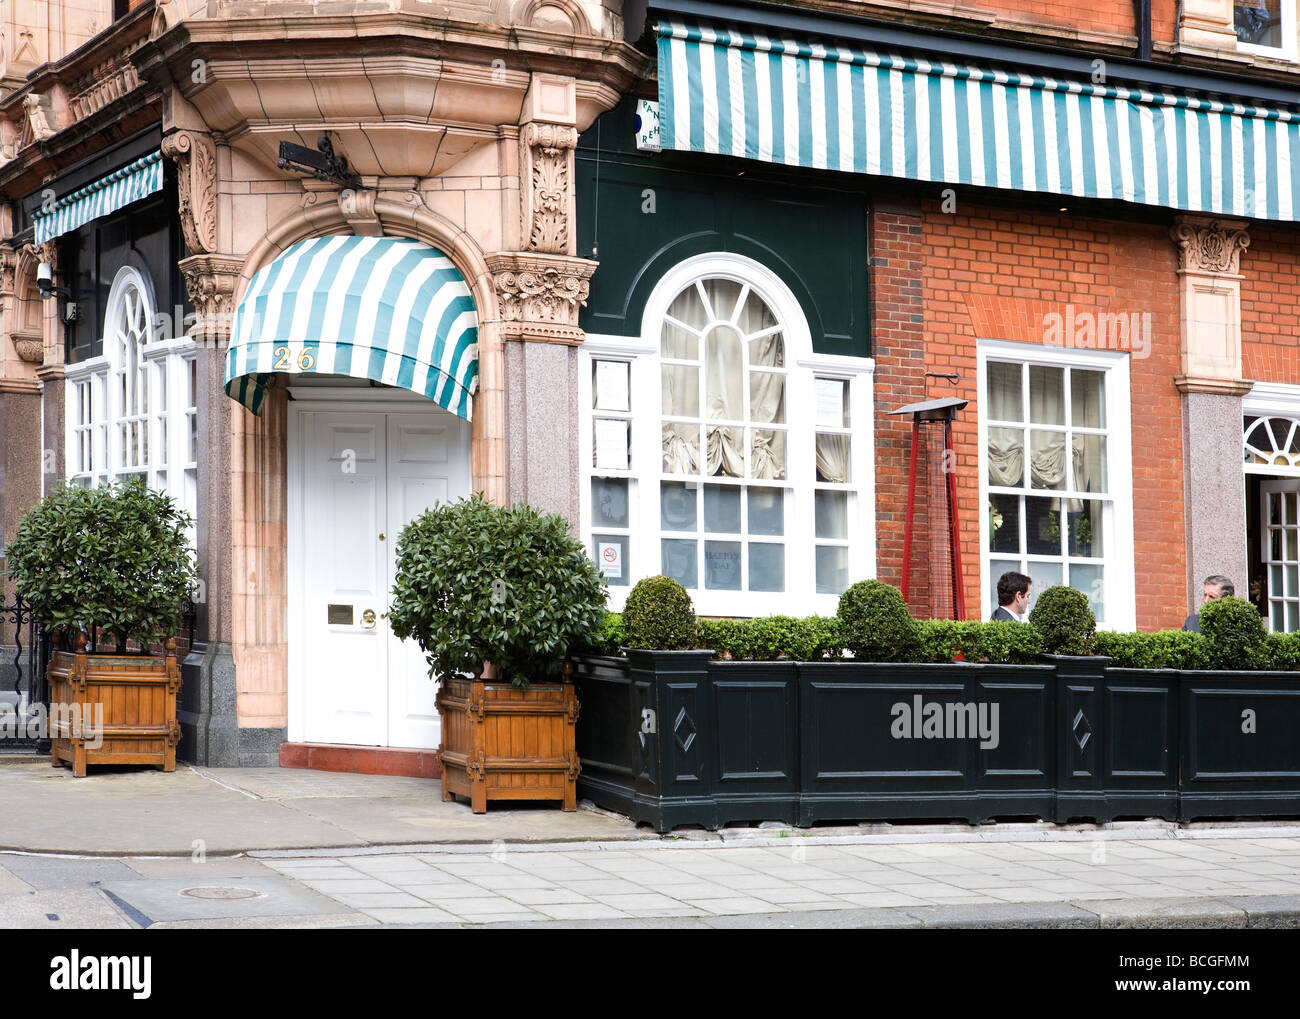 Harry's Bar on South Audley Street, London - Stock Image